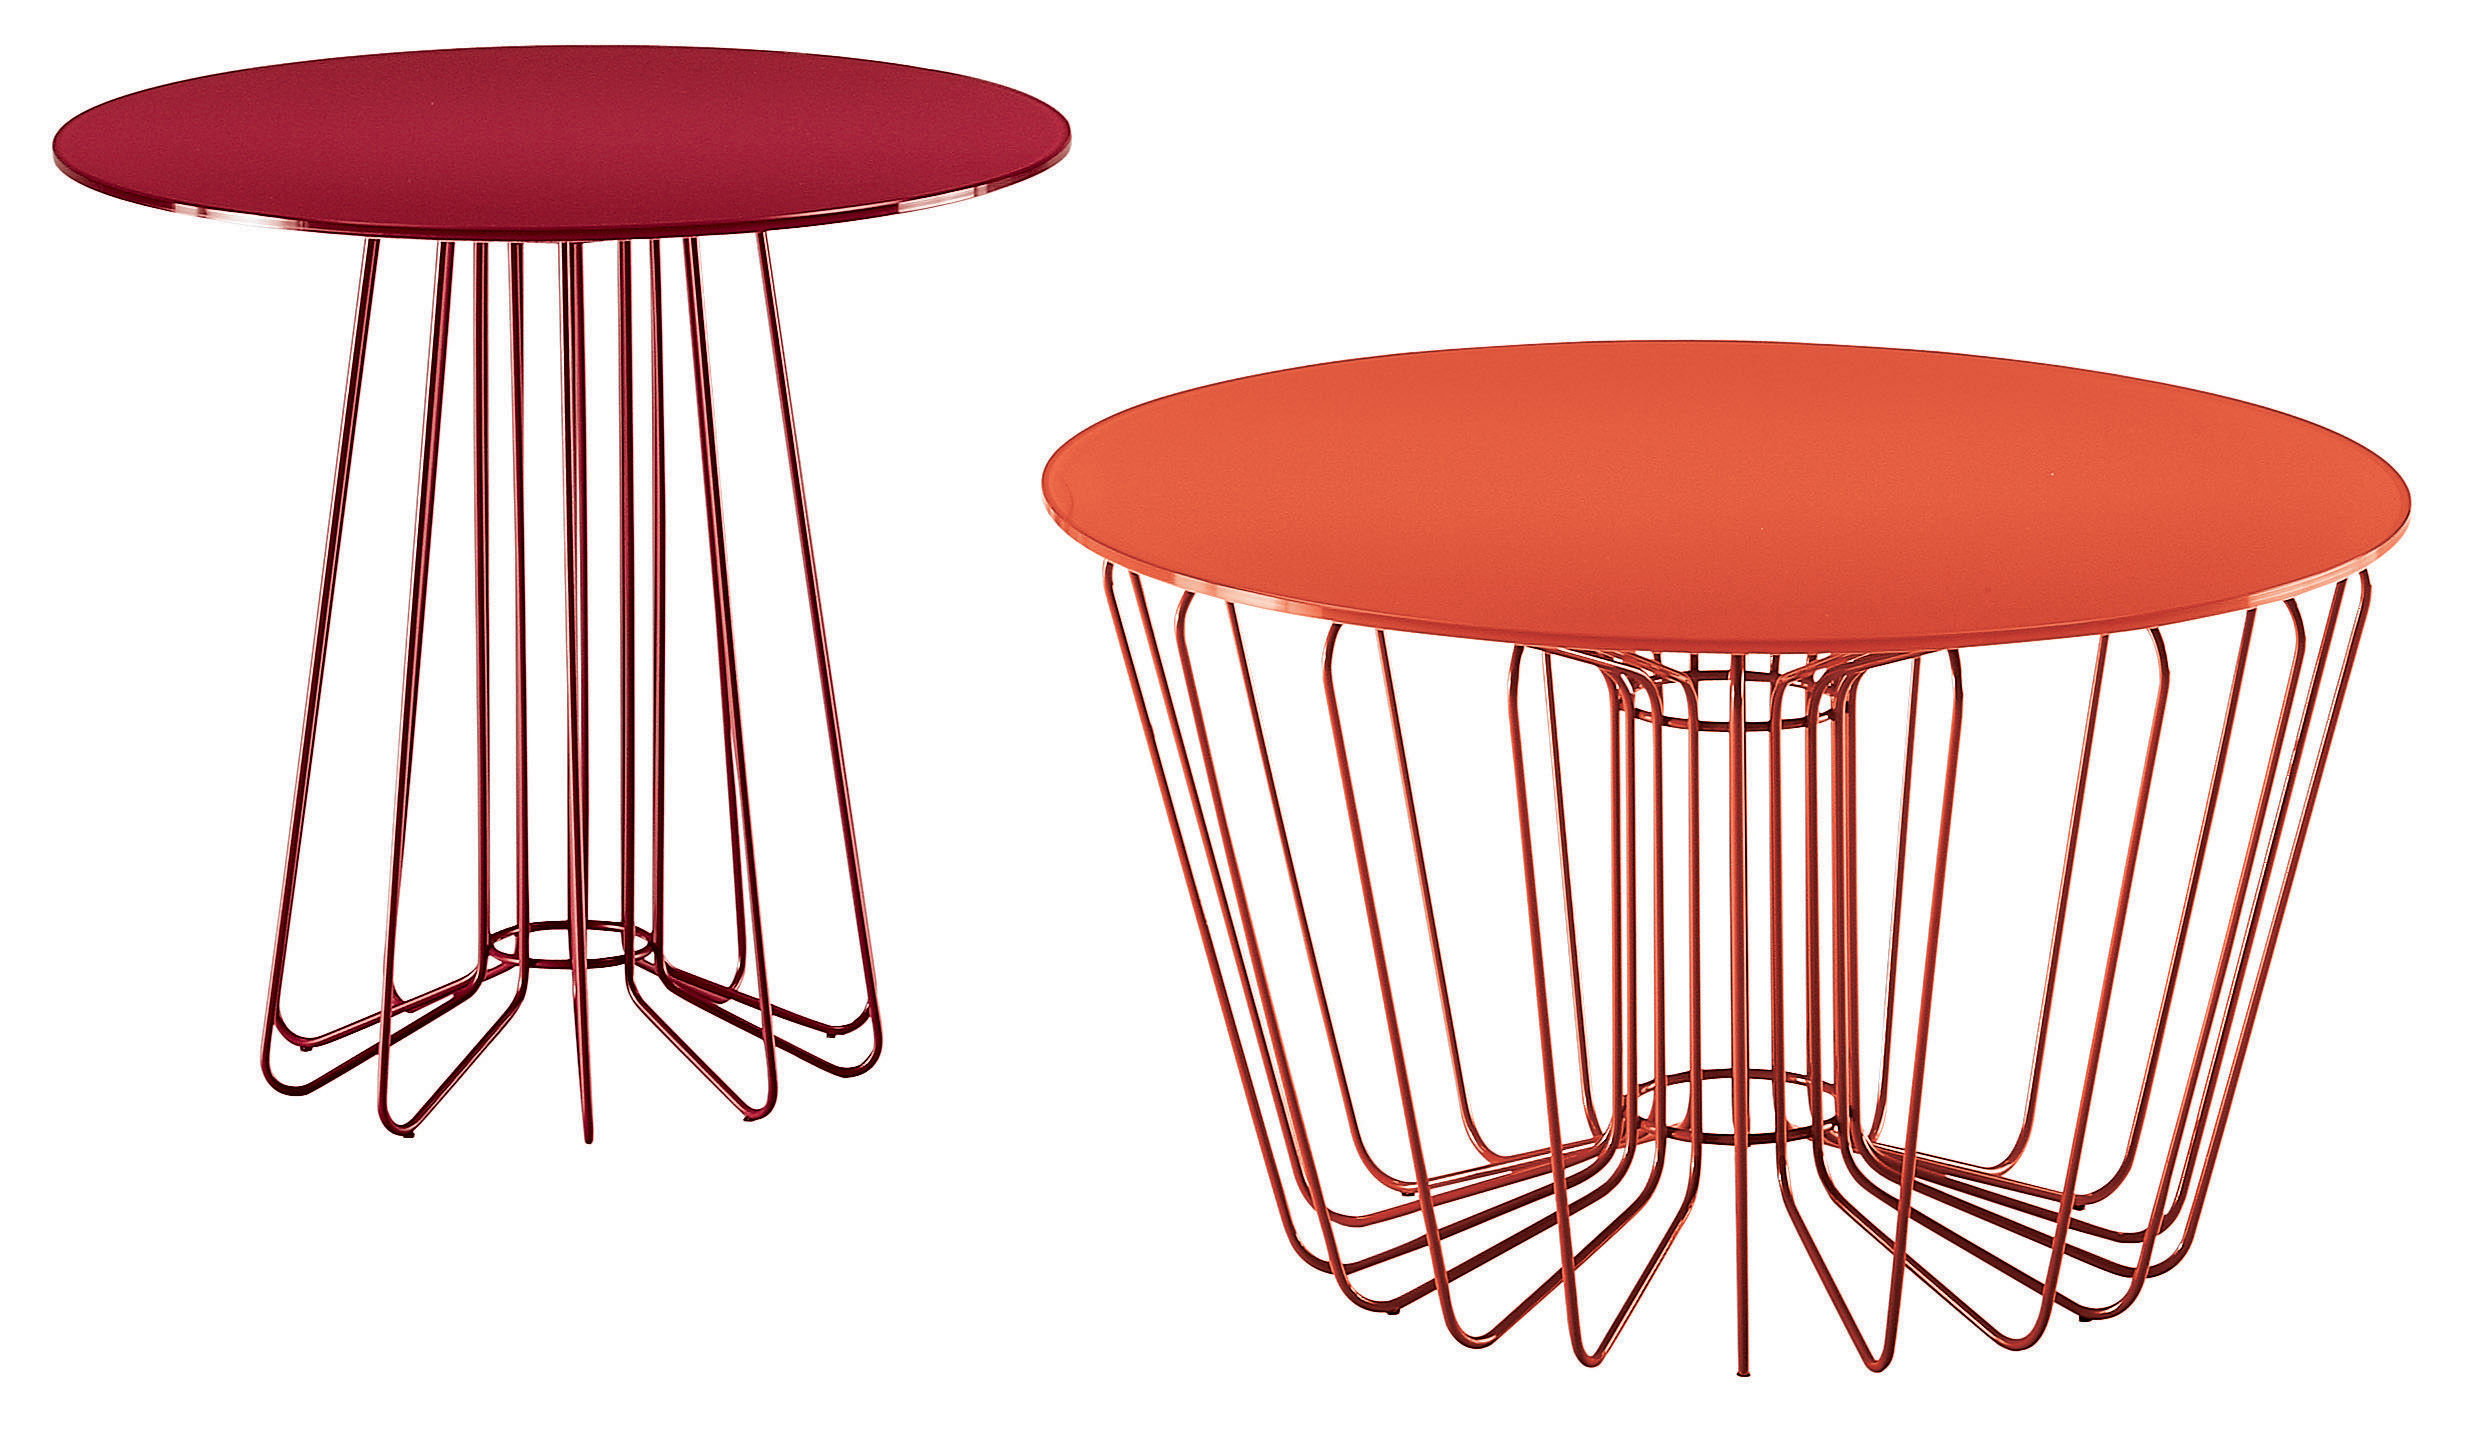 Wire coffee table orange leg ant table top by zanotta made in loading keyboard keysfo Image collections